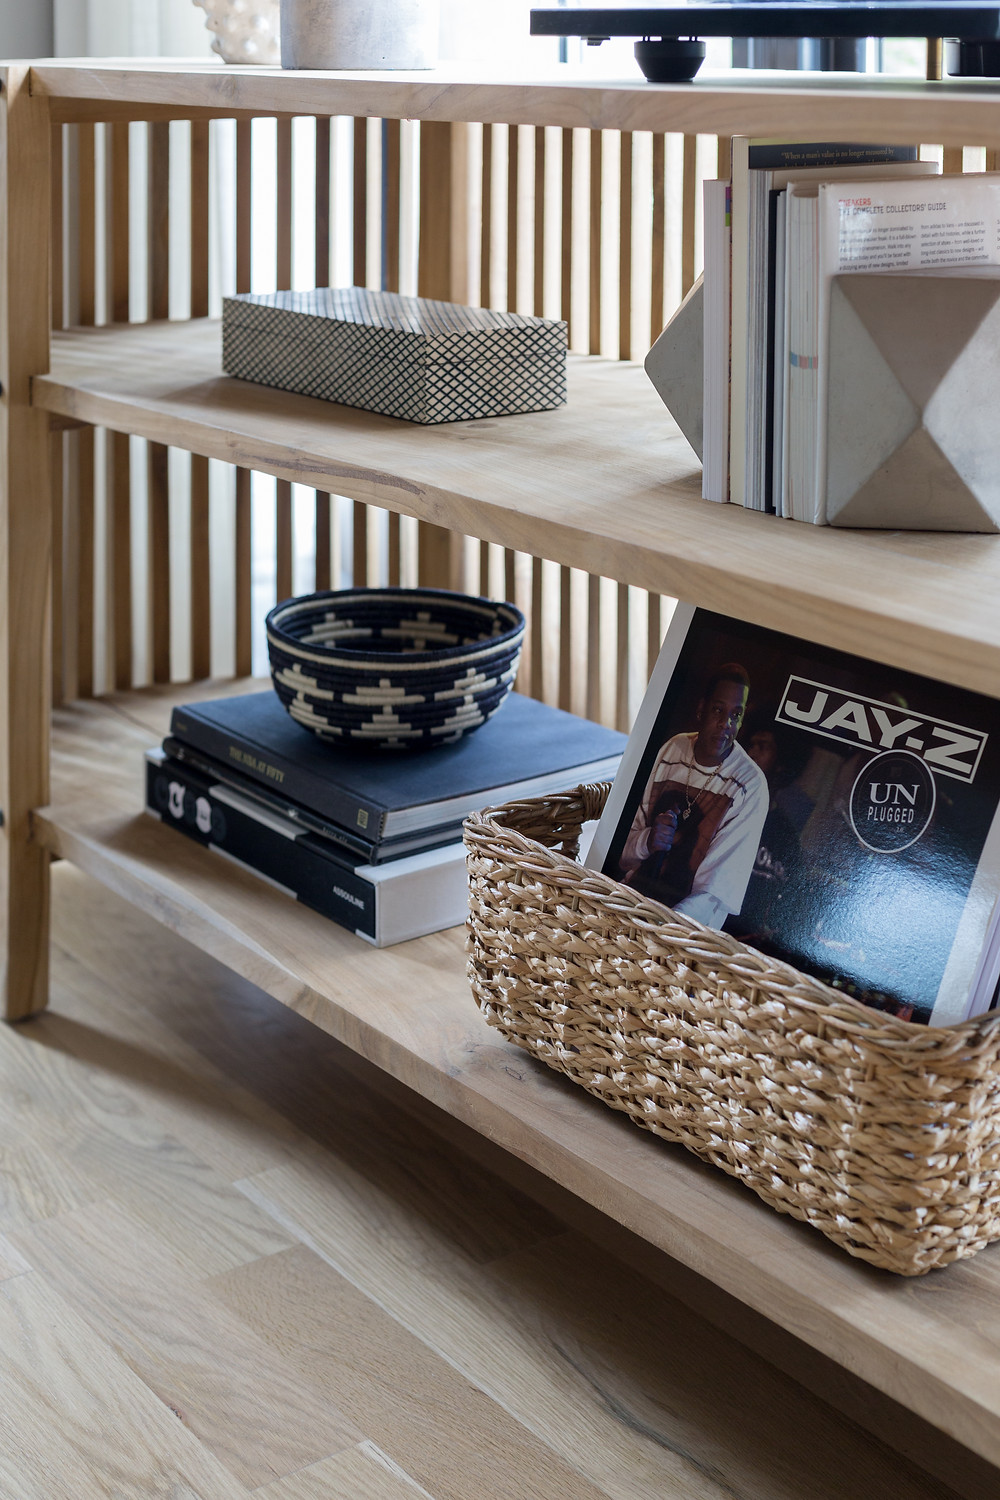 white oak shelf with books and vinyl records